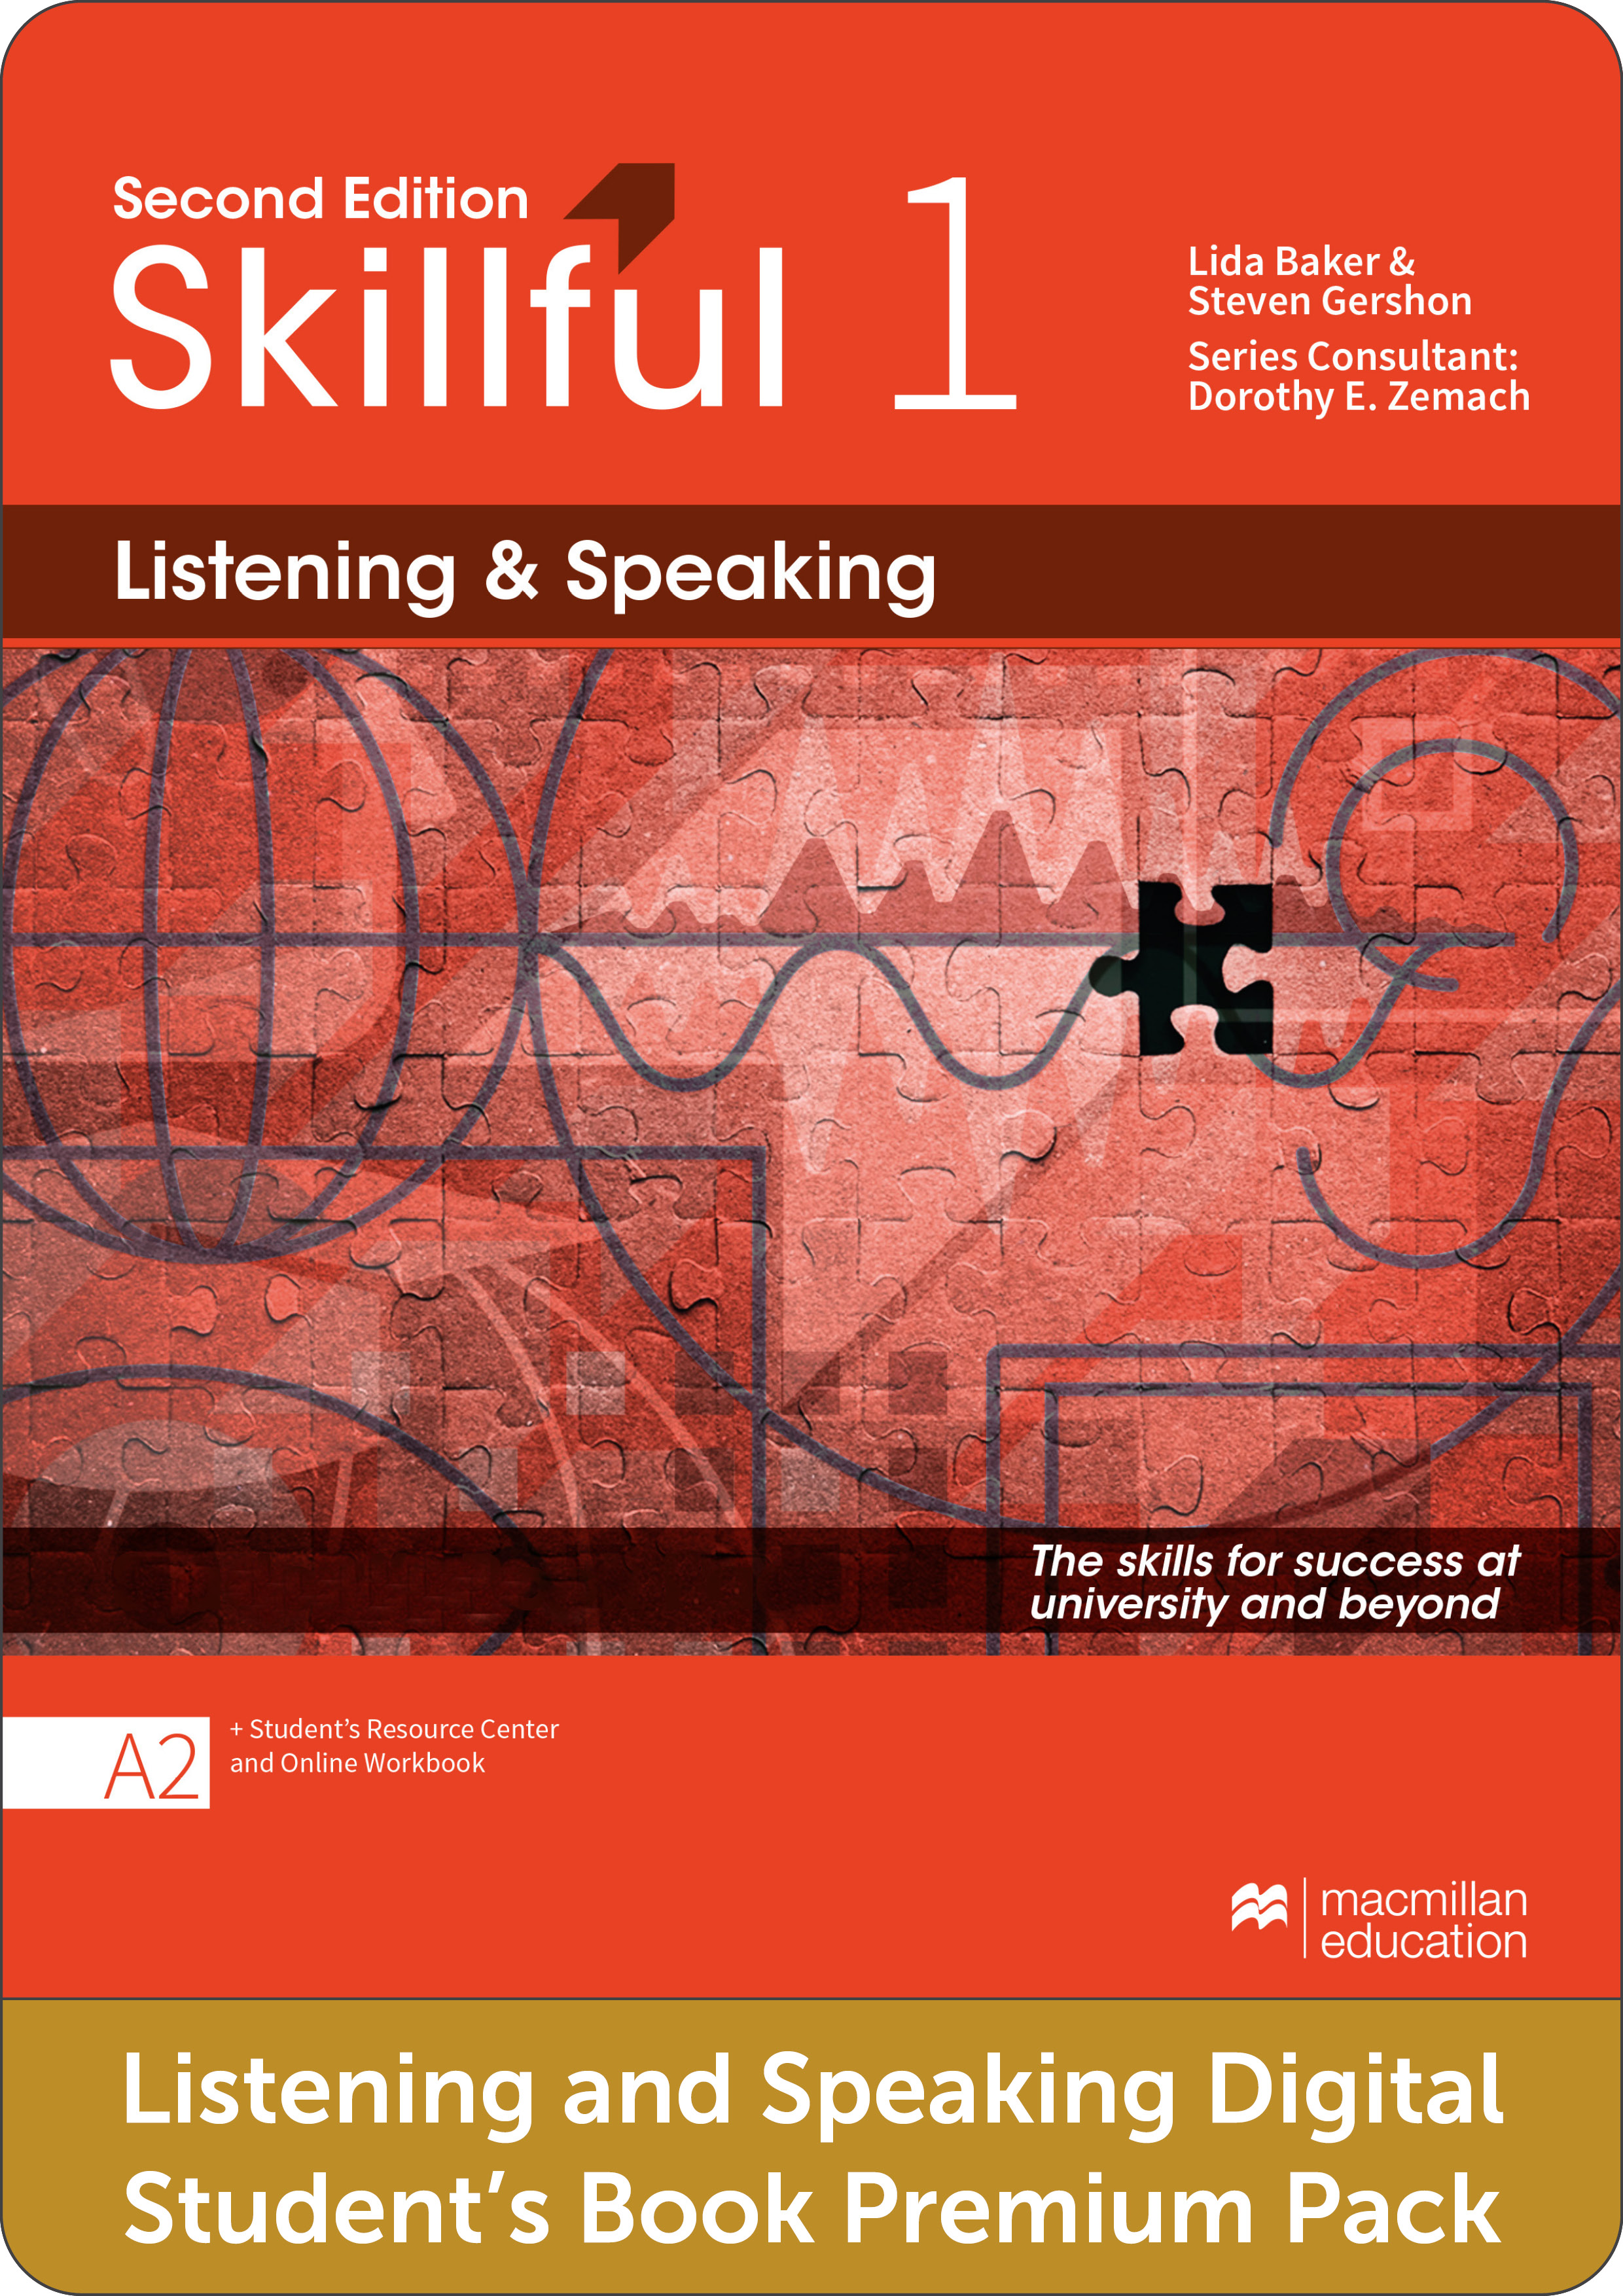 Skillful Second Edition Level 1 Listening and Speaking Premium Digital Student's Book Pack